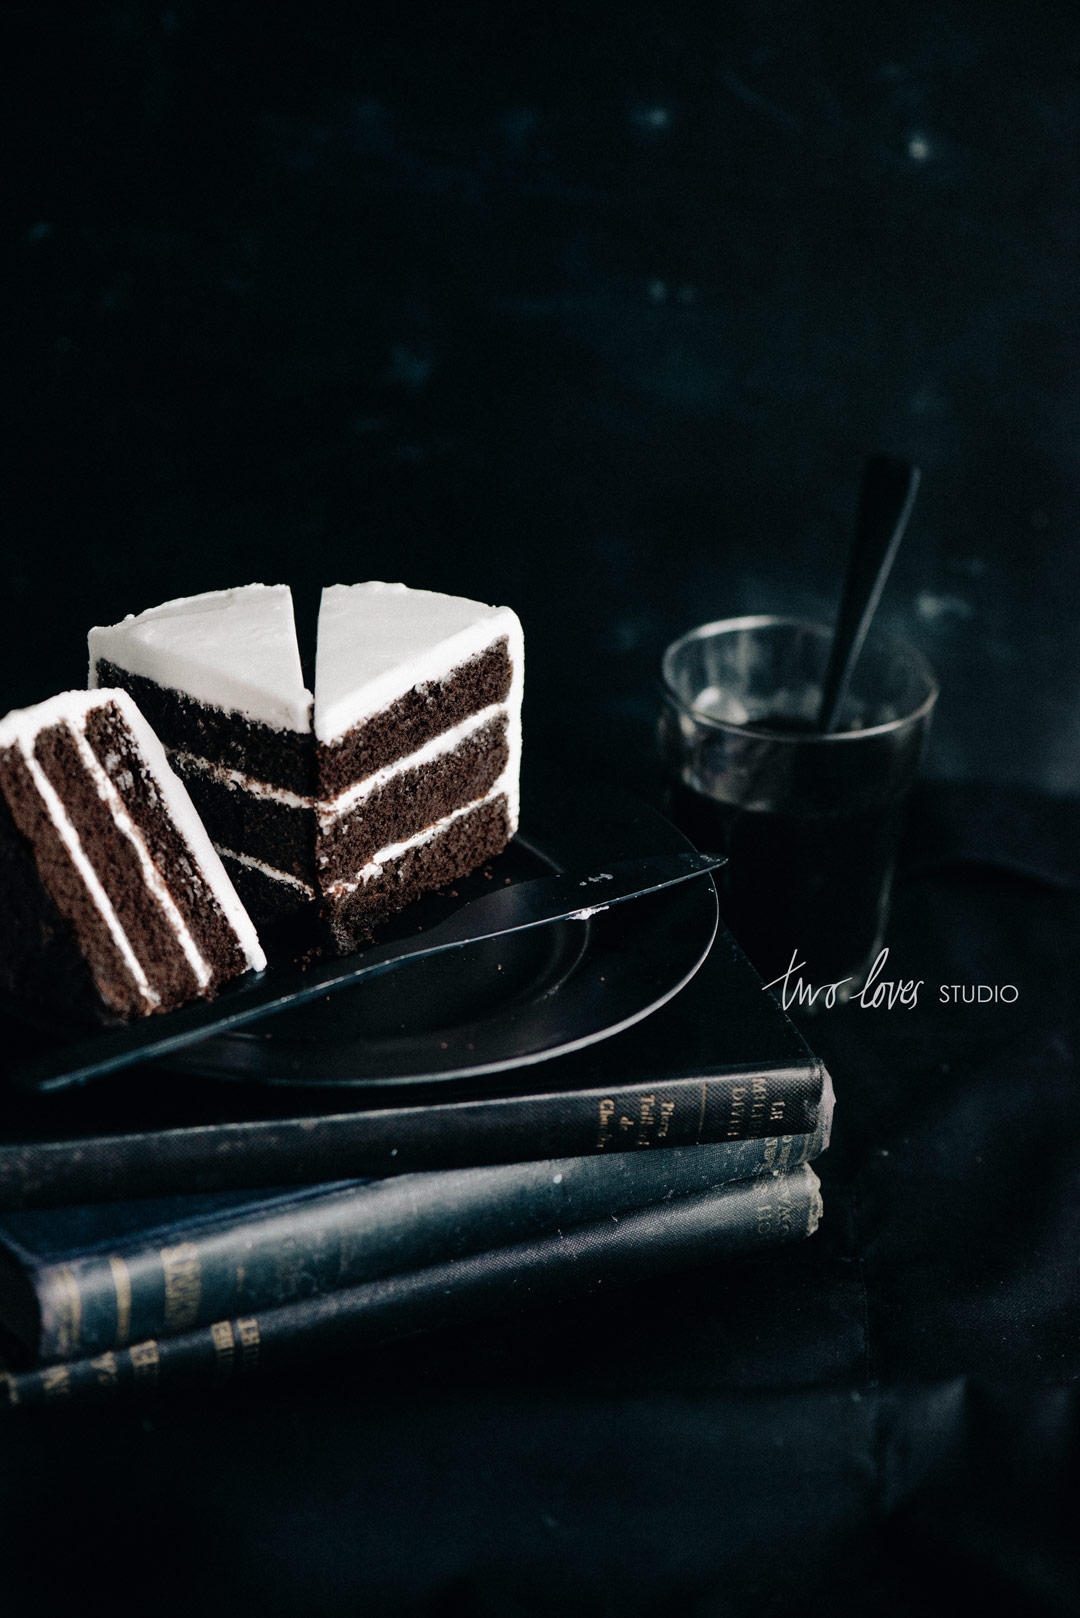 Two Loves Studio Black White Food Photography Chocolate Cake